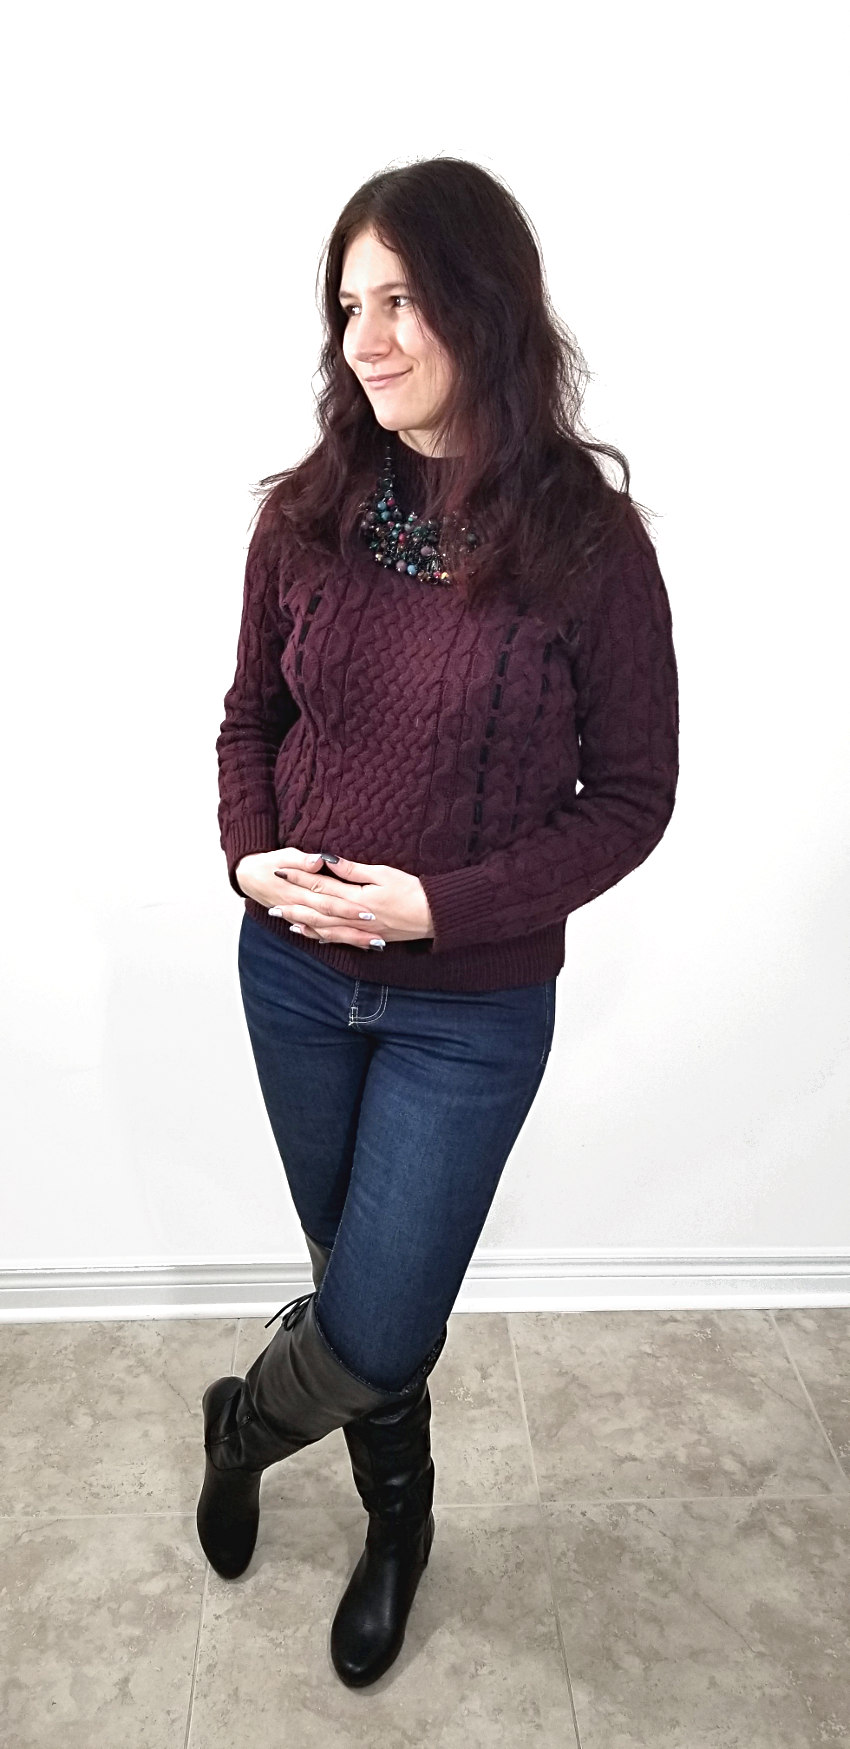 Polar Bear Style Laced-Up Burgundy Knit Sweater Black Statement Necklace Black Tall Boots